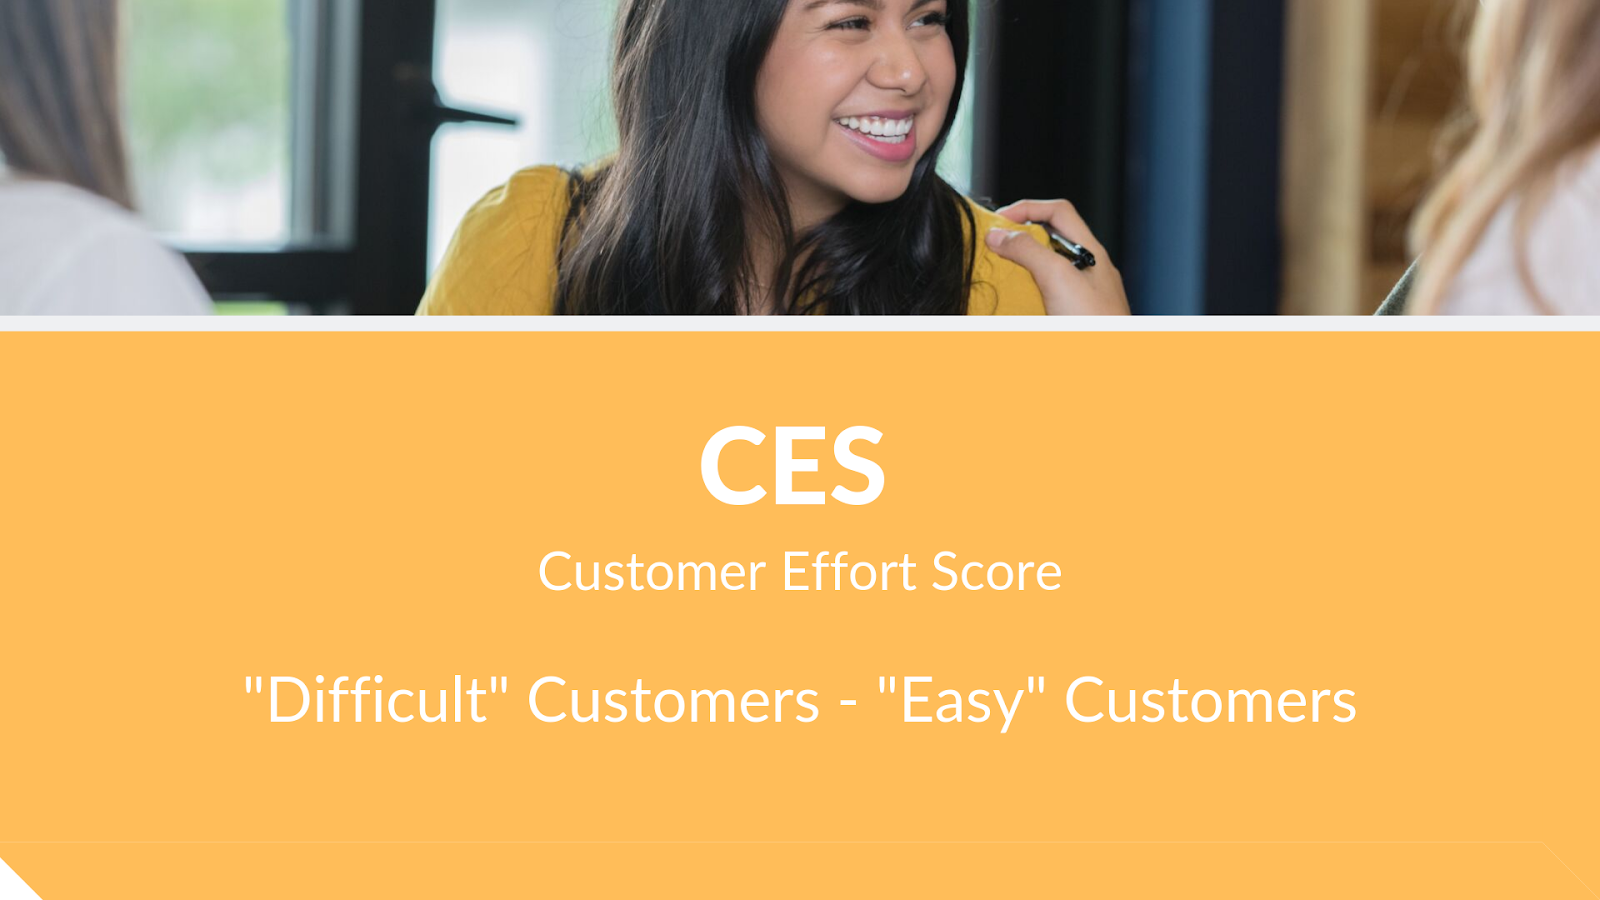 Customer Effort Score - measuring customer loyalty